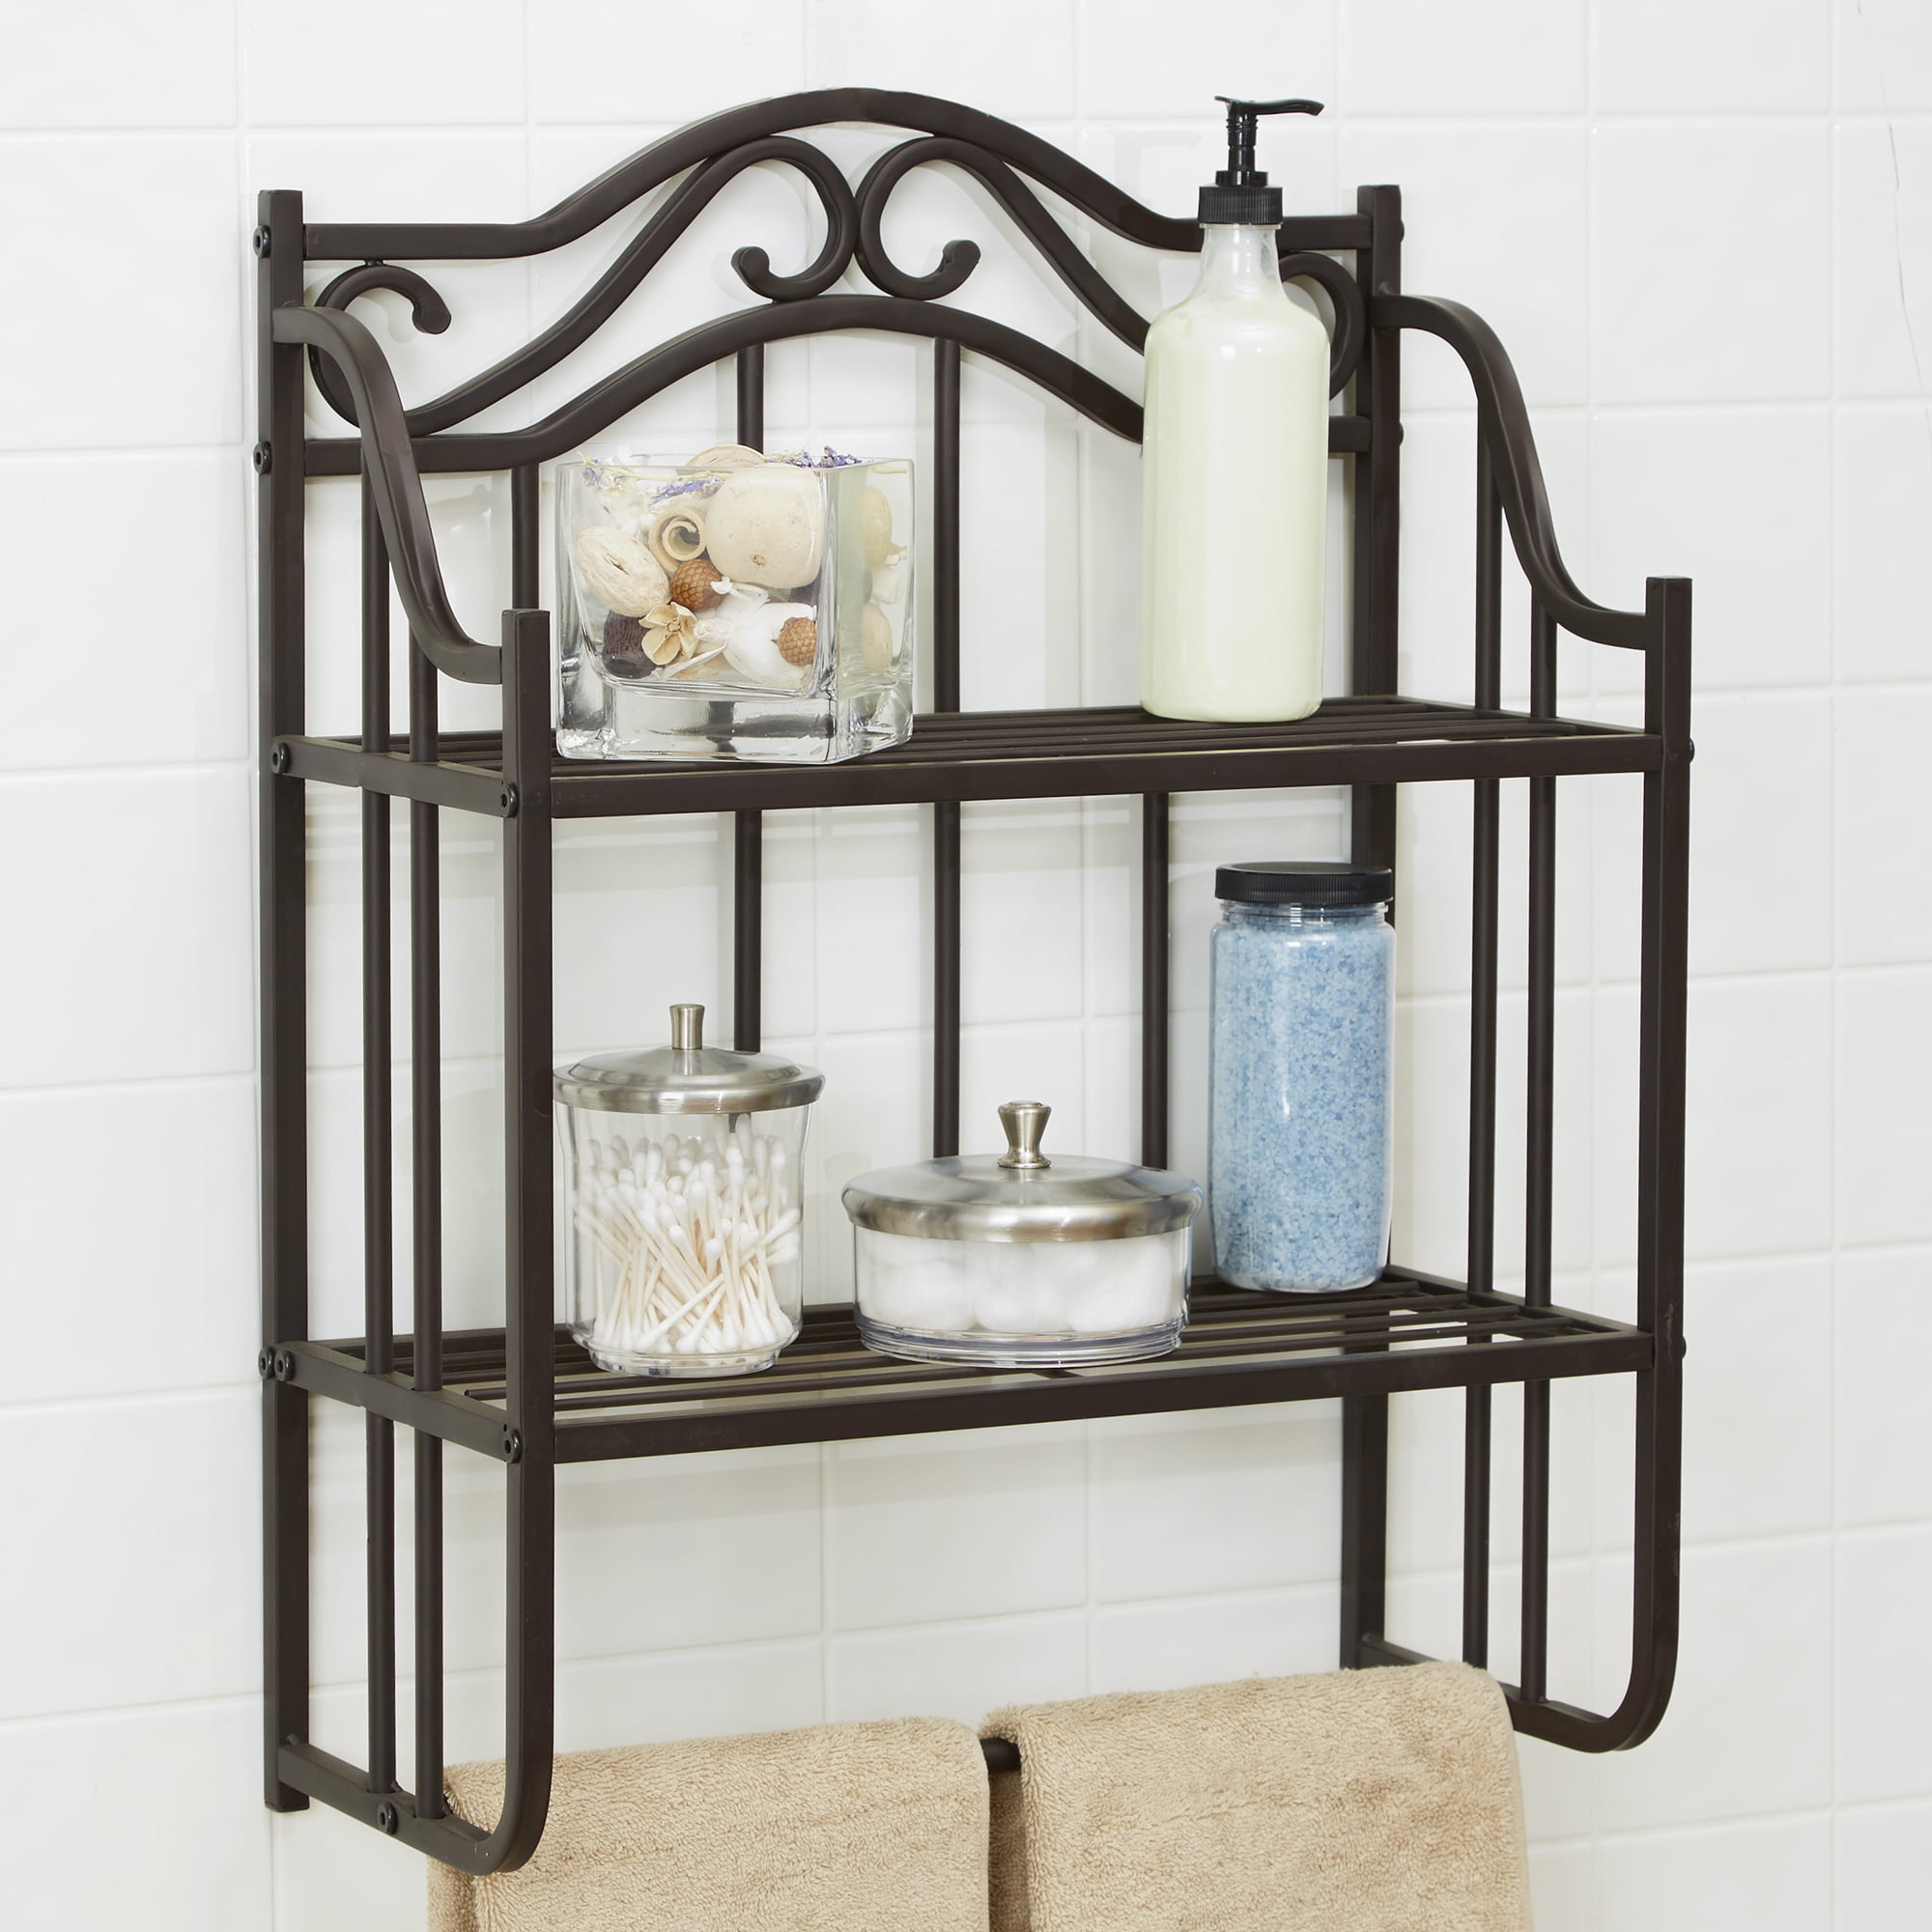 chapter bathroom storage wall shelf oil rubbed bronze finish rh walmart com Bronze Bathroom Wall Shelves Bronze Bathroom Wall Shelves